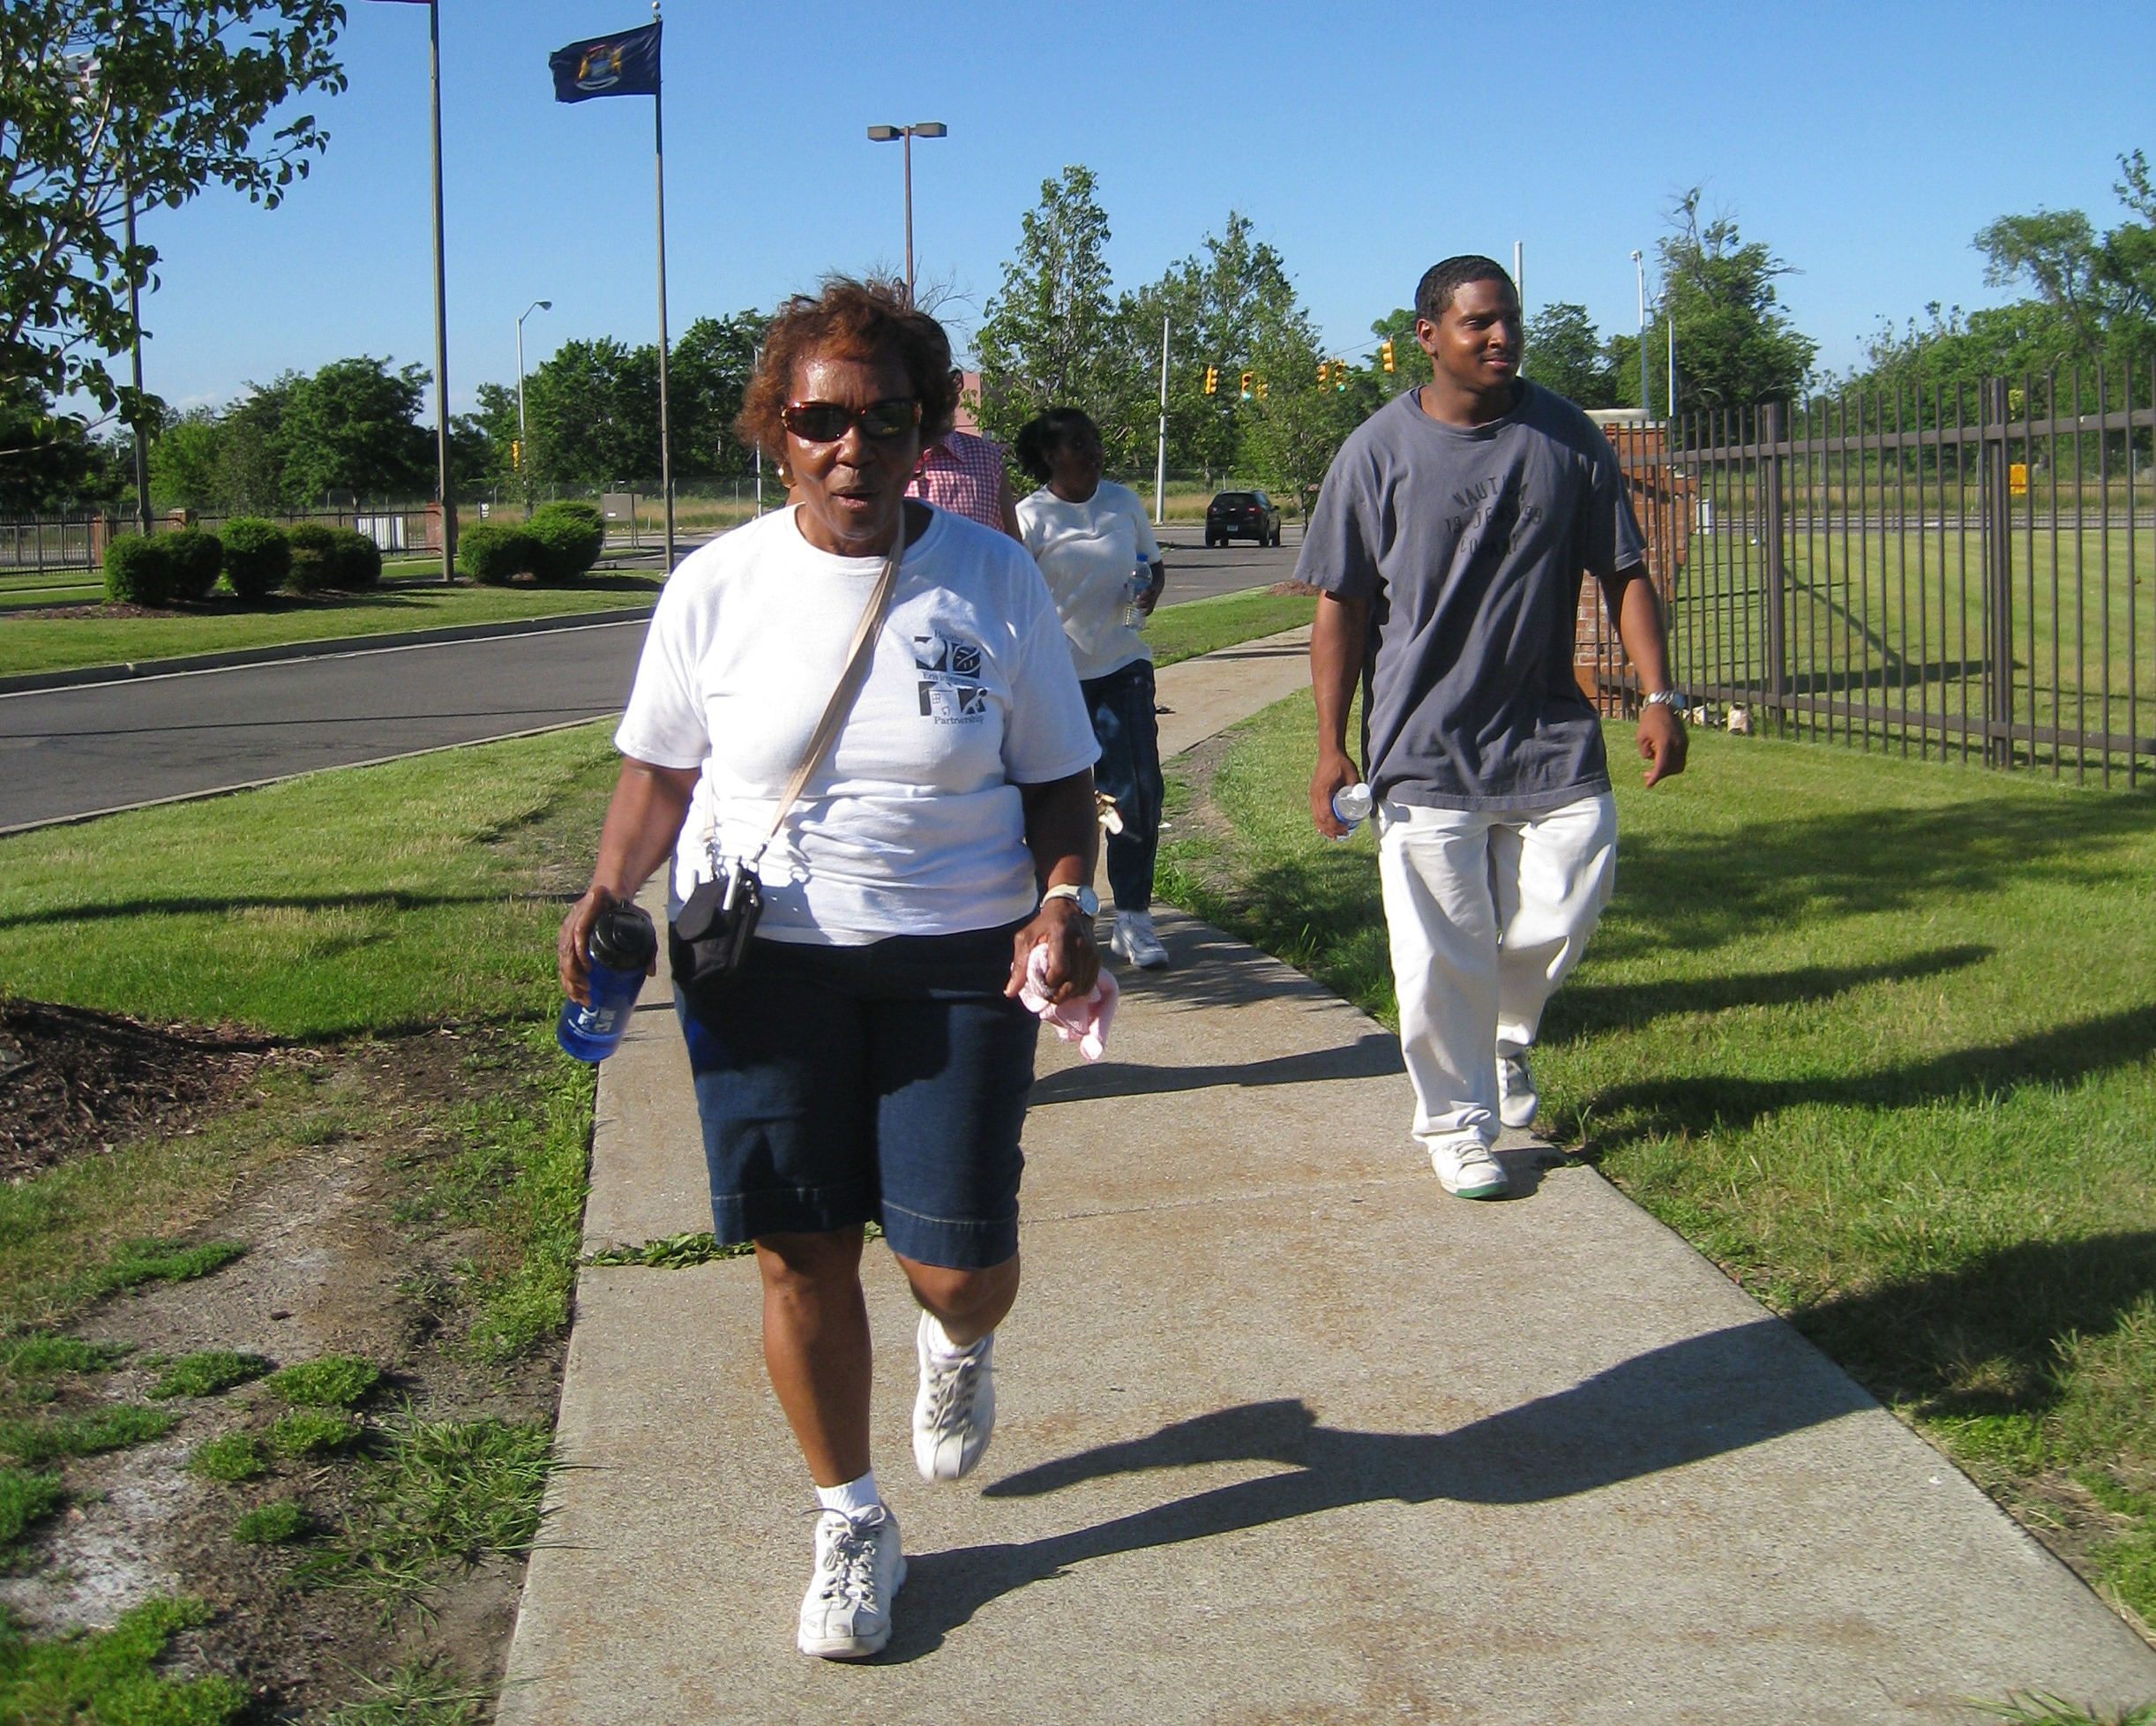 Friends of Parkside walking group in 2009, the year the Walk Your Heart to Health program started. Walkers are Gladys, Maxine and Baraka. Image credit: Betty Izumi